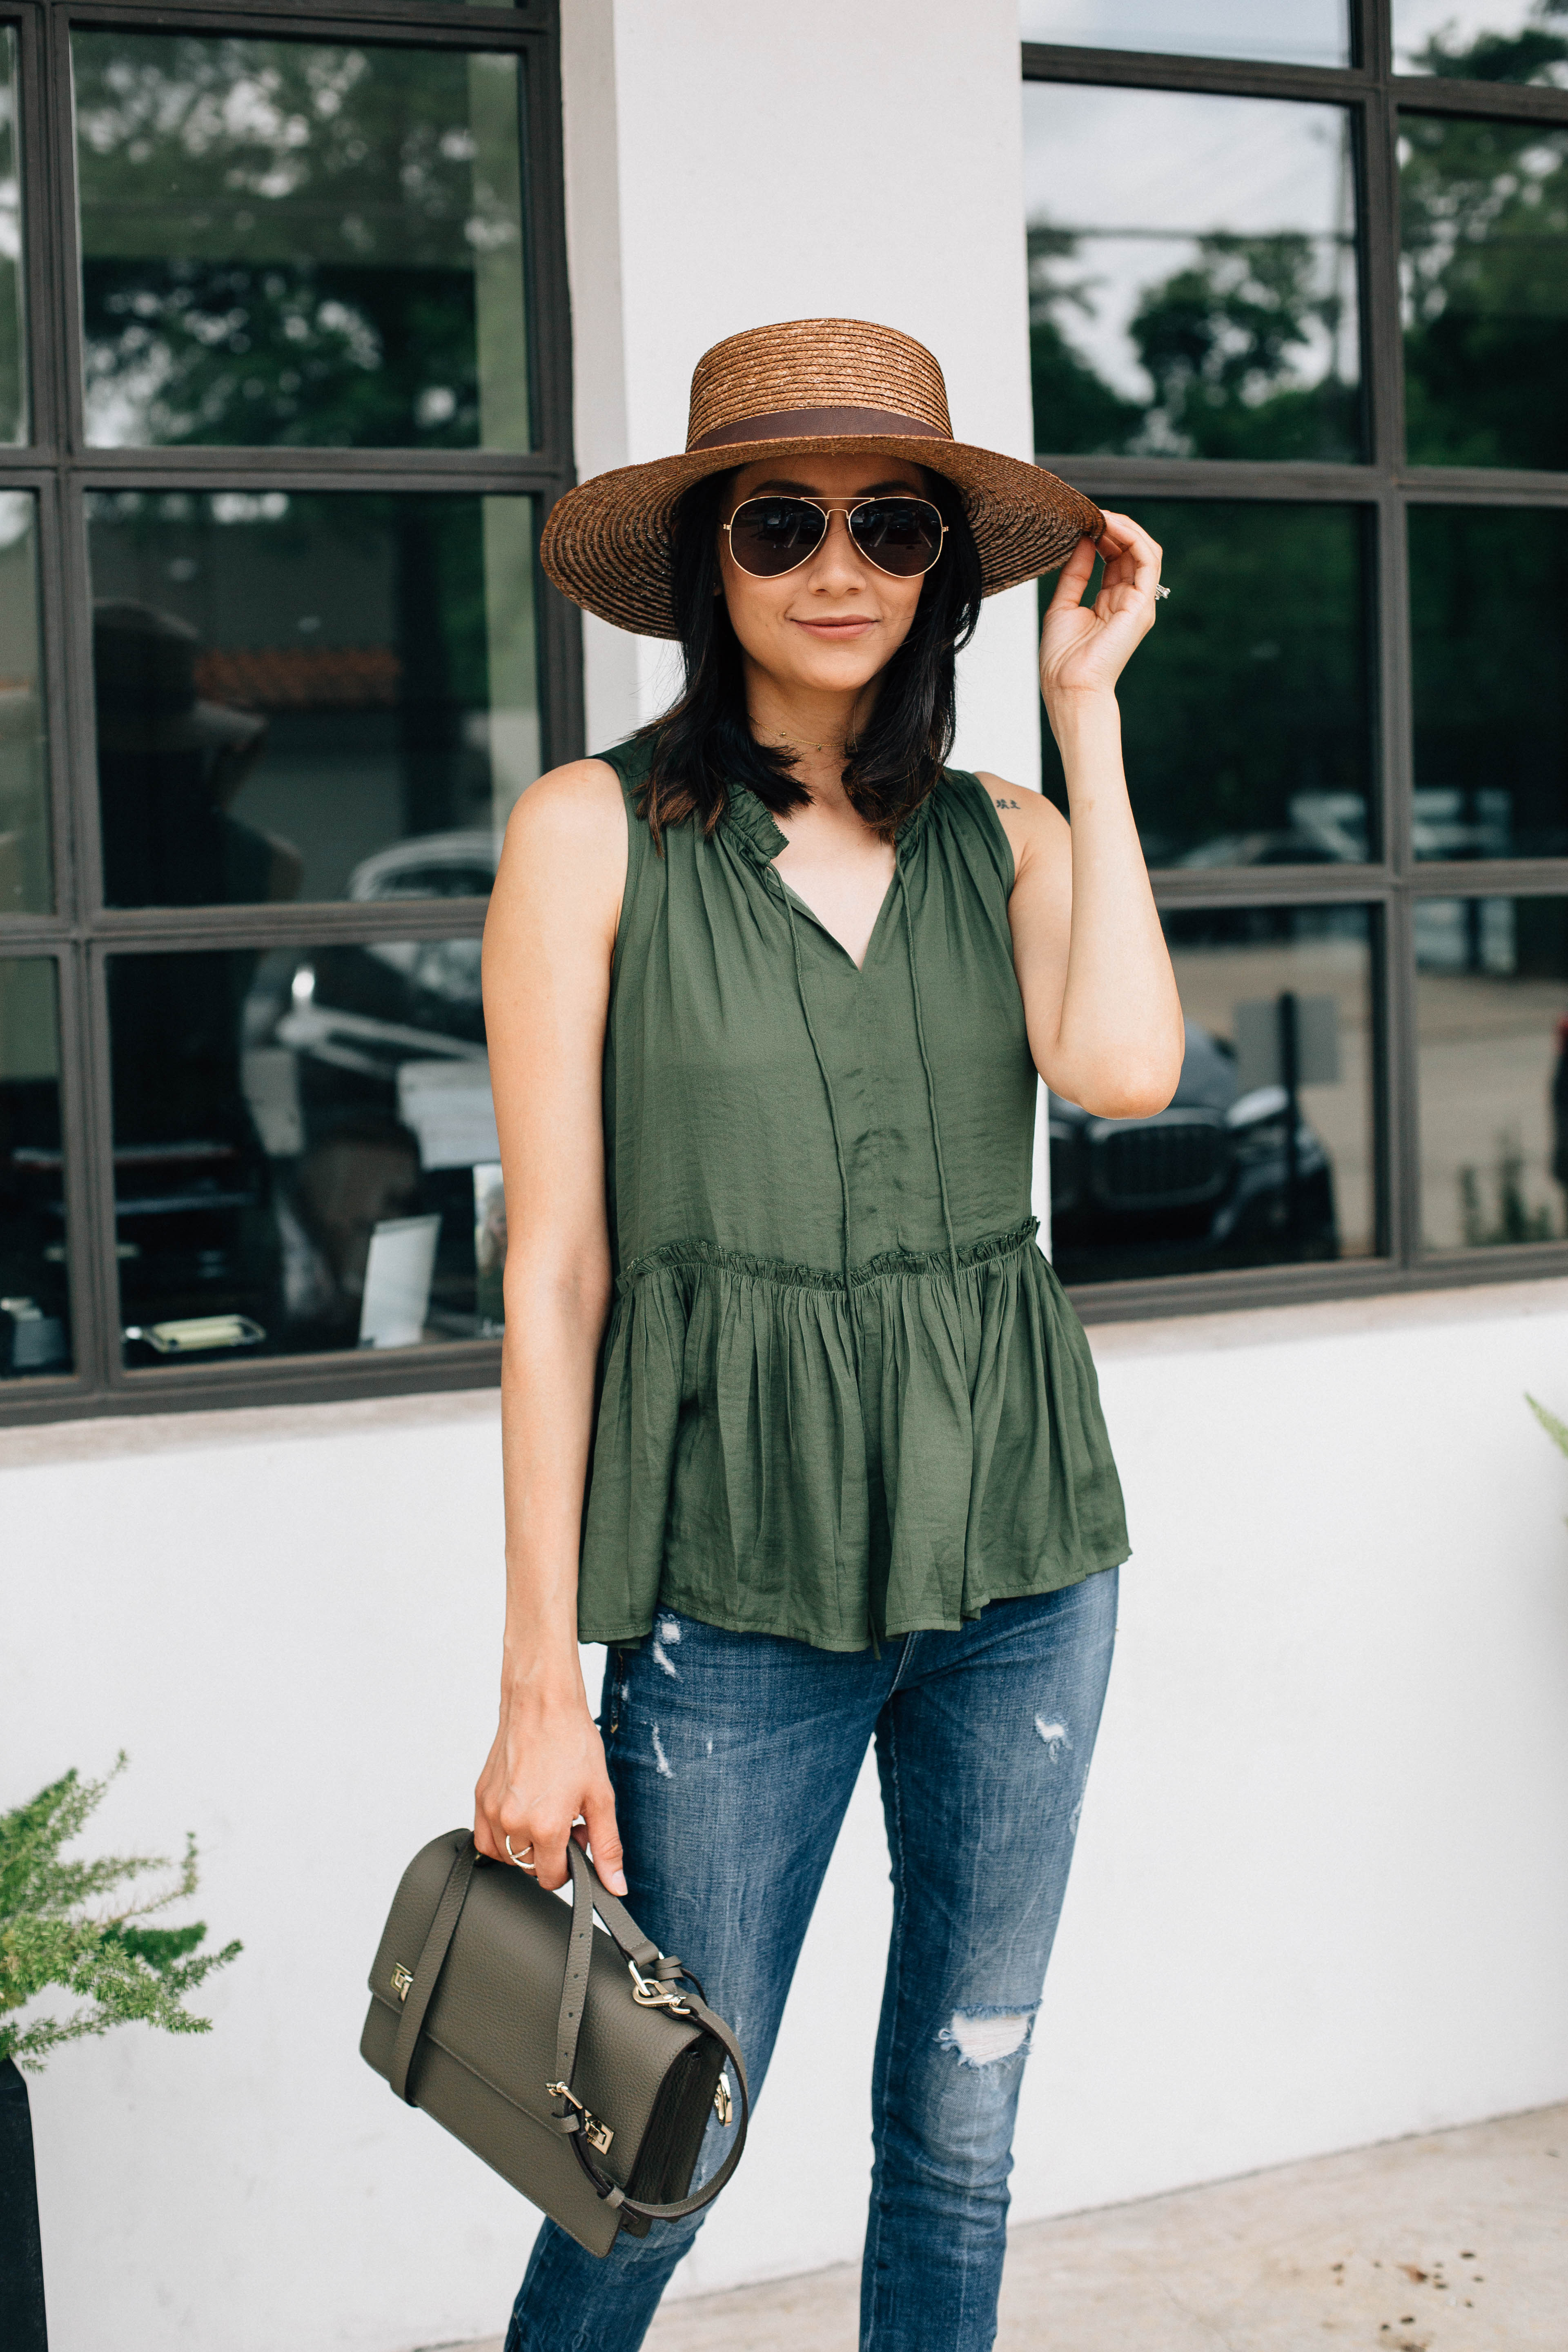 Loft Top | Henri Bendel Bag